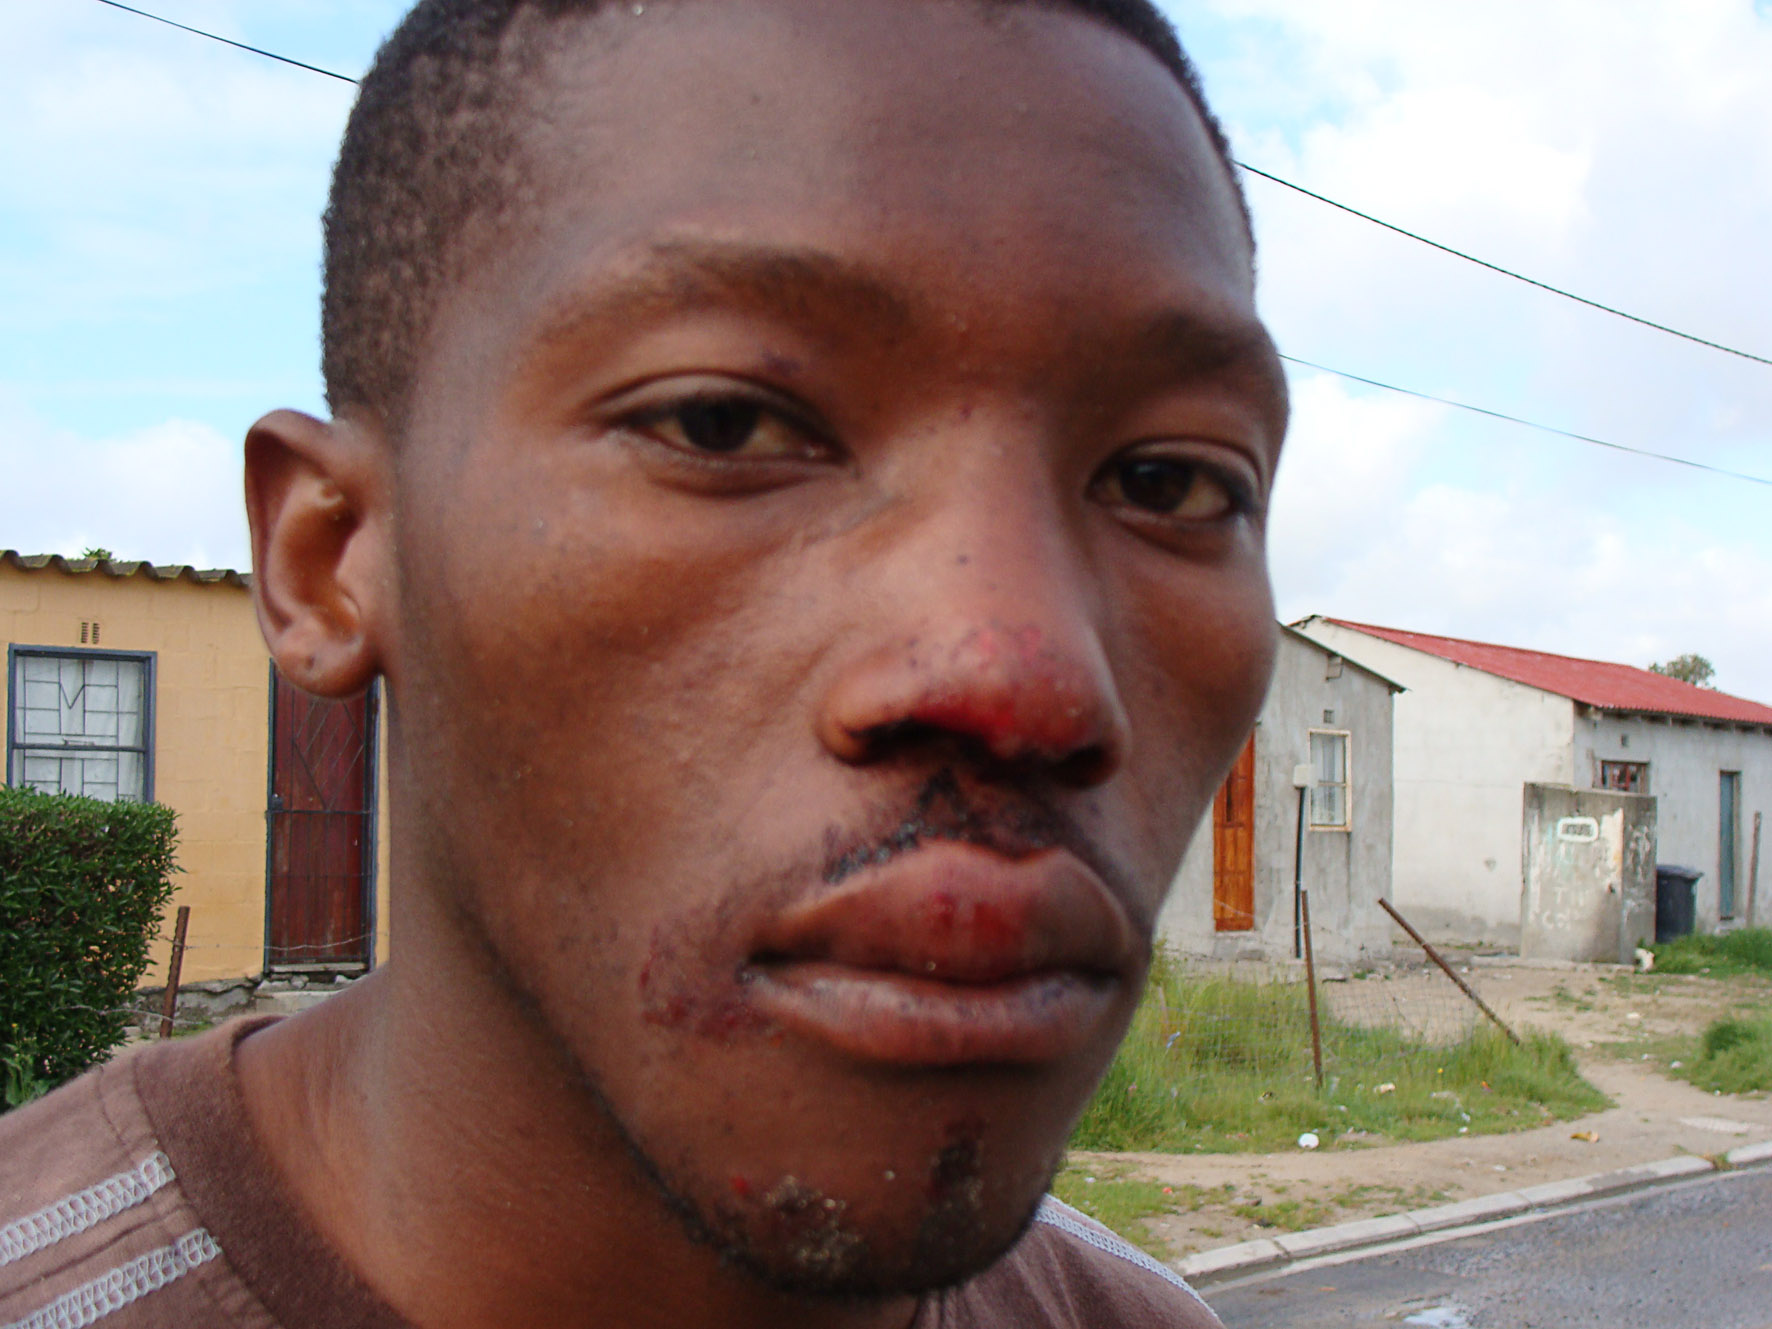 Philippi resident Lulamile Loliwe, 23, says he was one of 13 young men taken in for questioning and brutally beaten by police after a police reservist was gunned down on Sunday night. Photo: Sandiso Phaliso/WCN